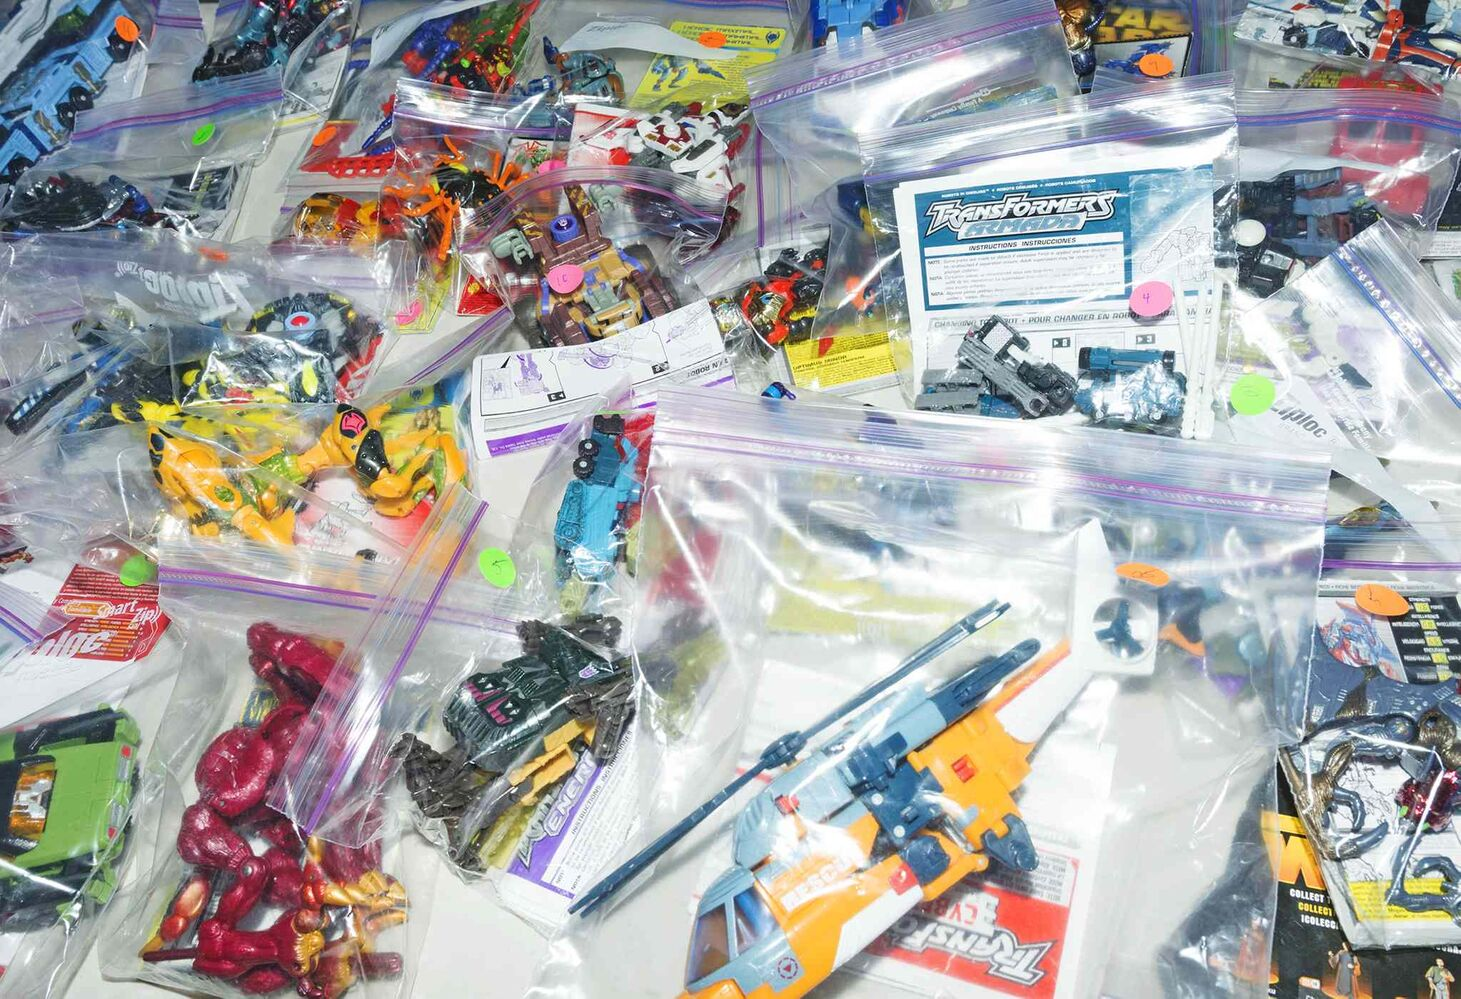 Vendors brought hundred of collectors items to Manitoba's first Transformers themed fan convention on Saturday at the Clarion Hotel.  (Sarah Taylor / Winnipeg Free Press)